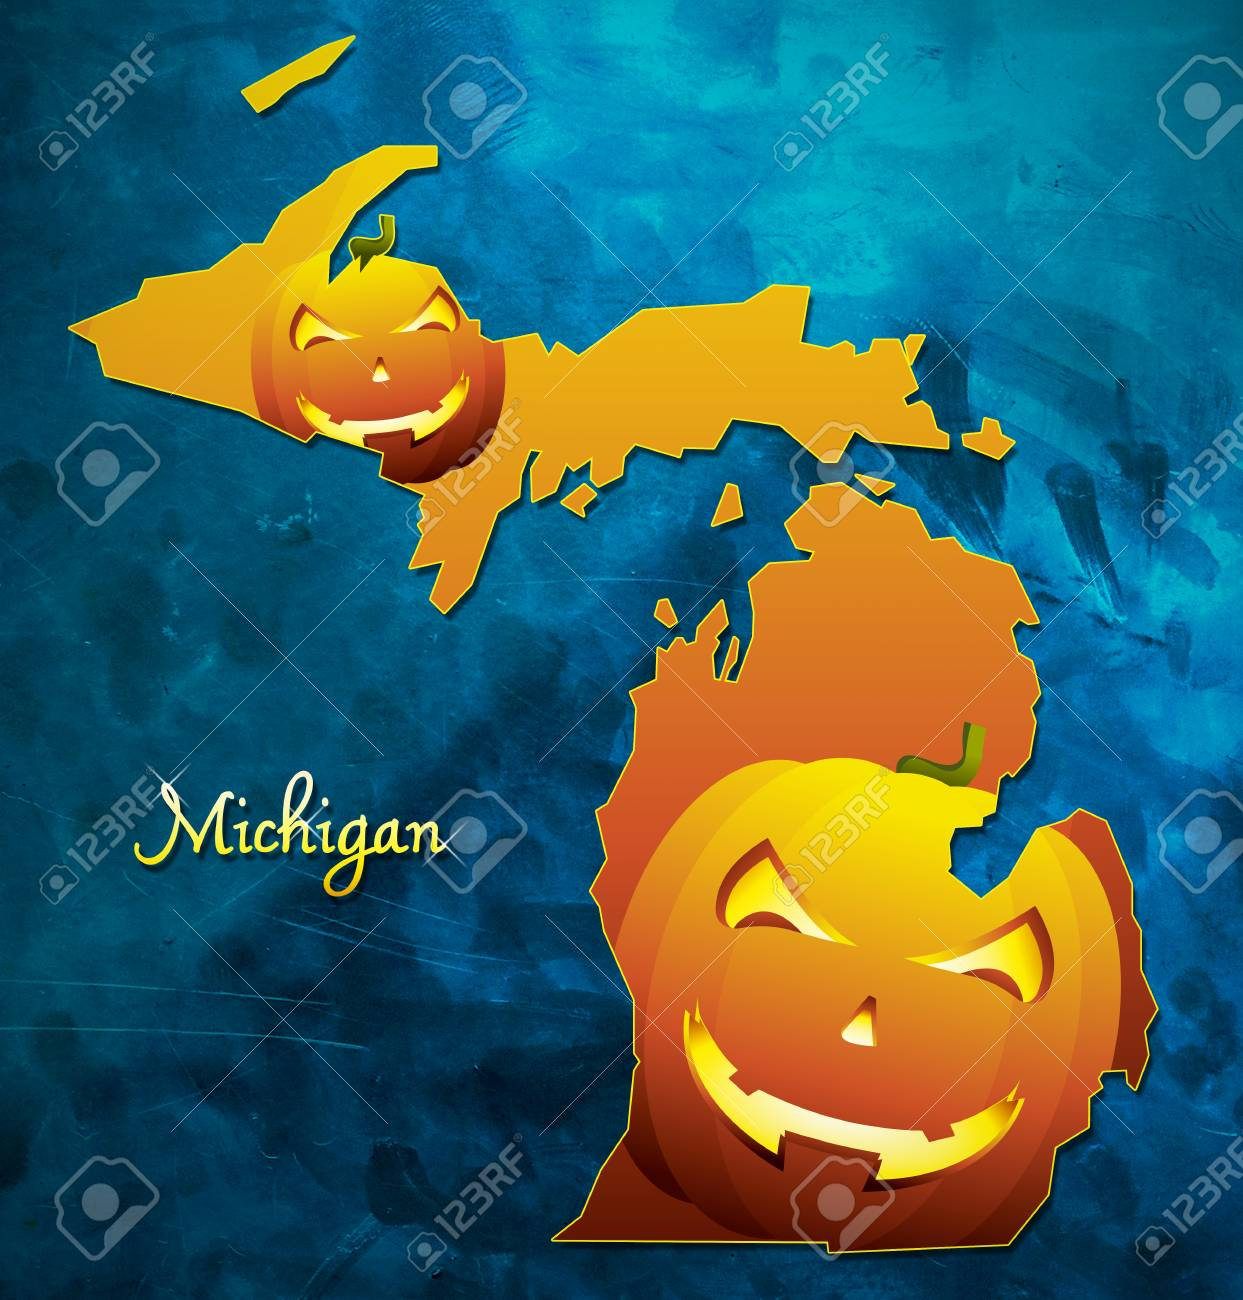 michigan state map usa with halloween pumpkin face illustration